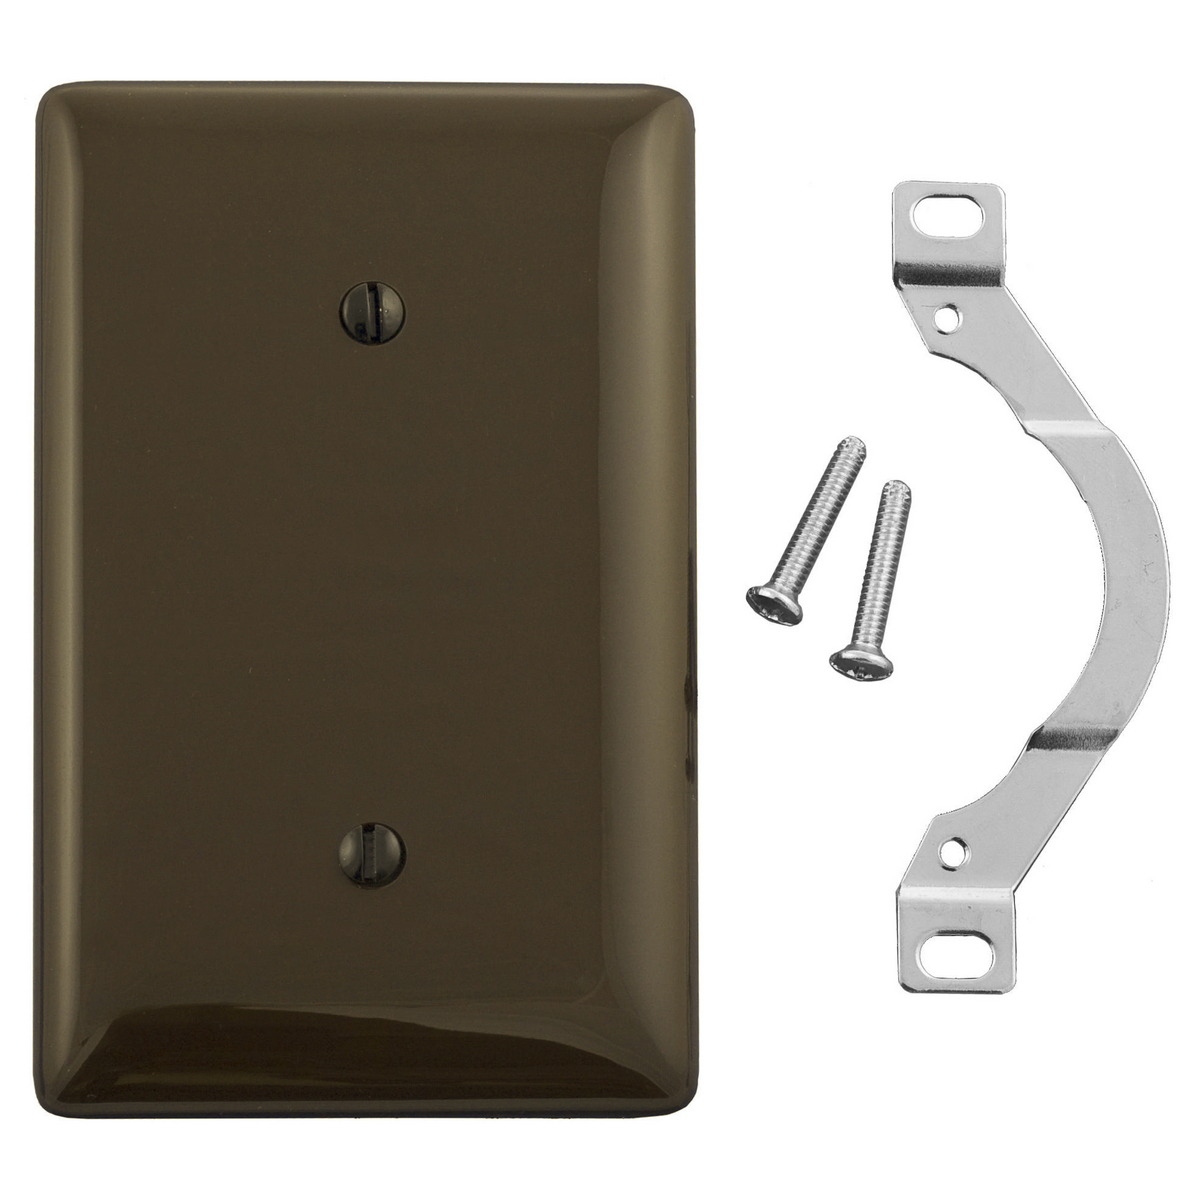 Hubbell NP14 1-Gang Brown Strap Mount Blank Wall Plate